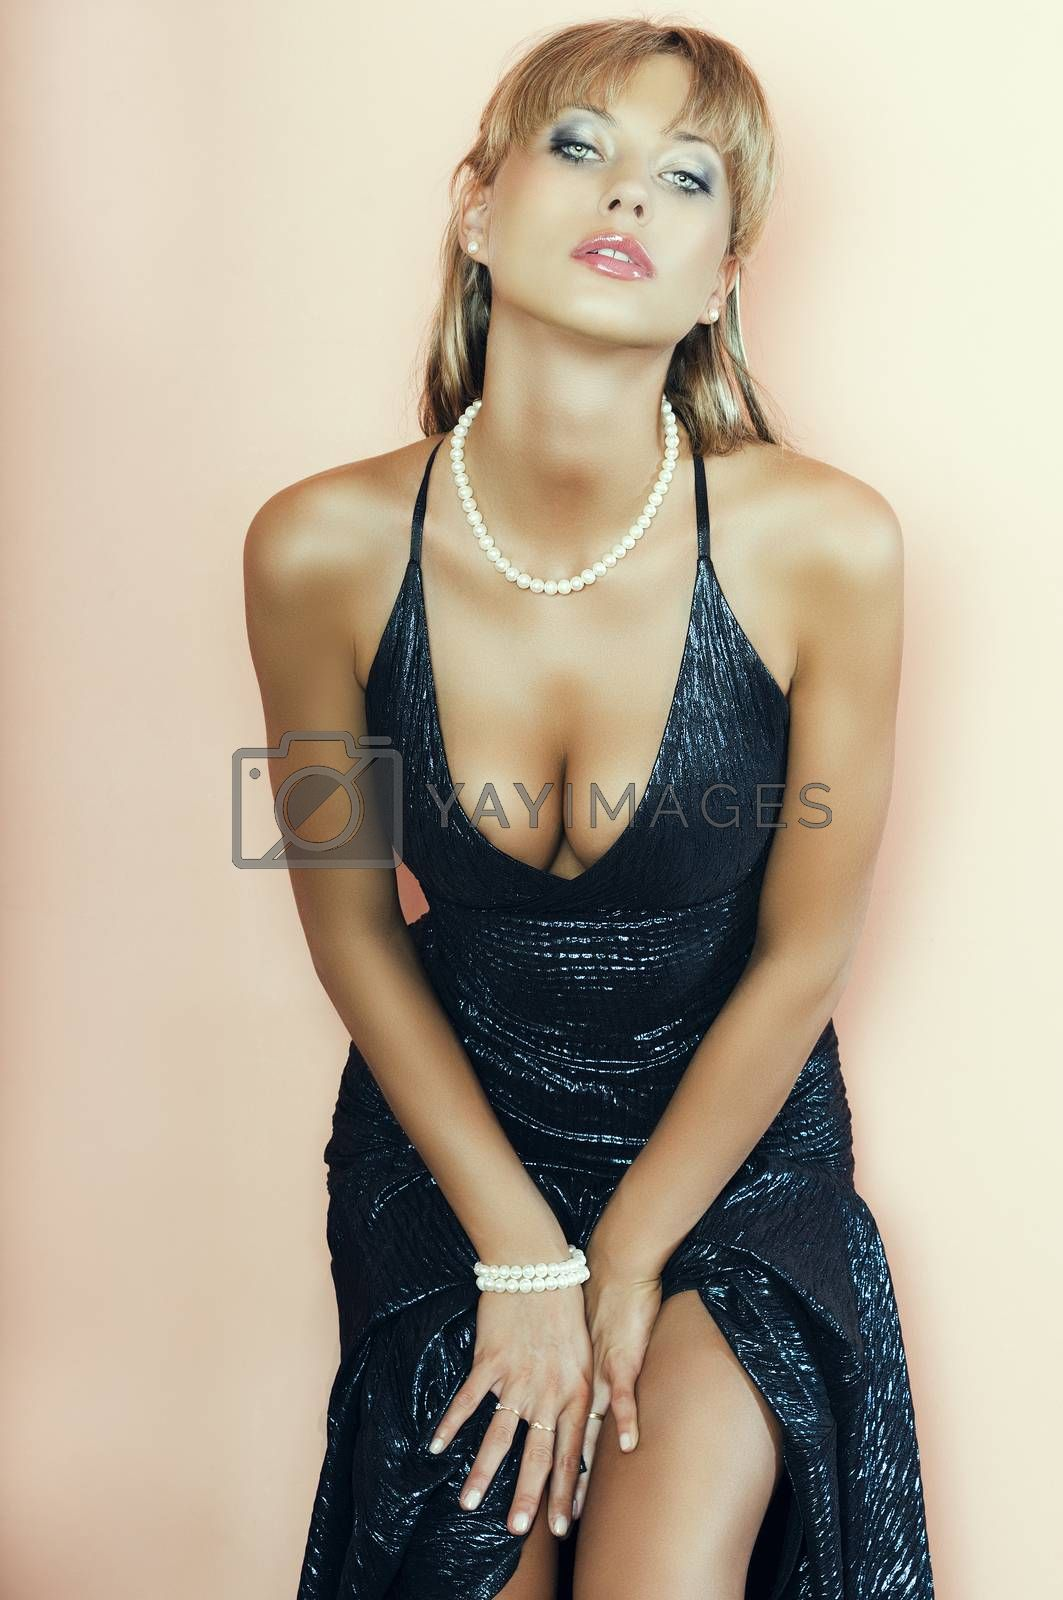 Royalty free image of pretty blonde girl with both hands on the legs by fotoCD